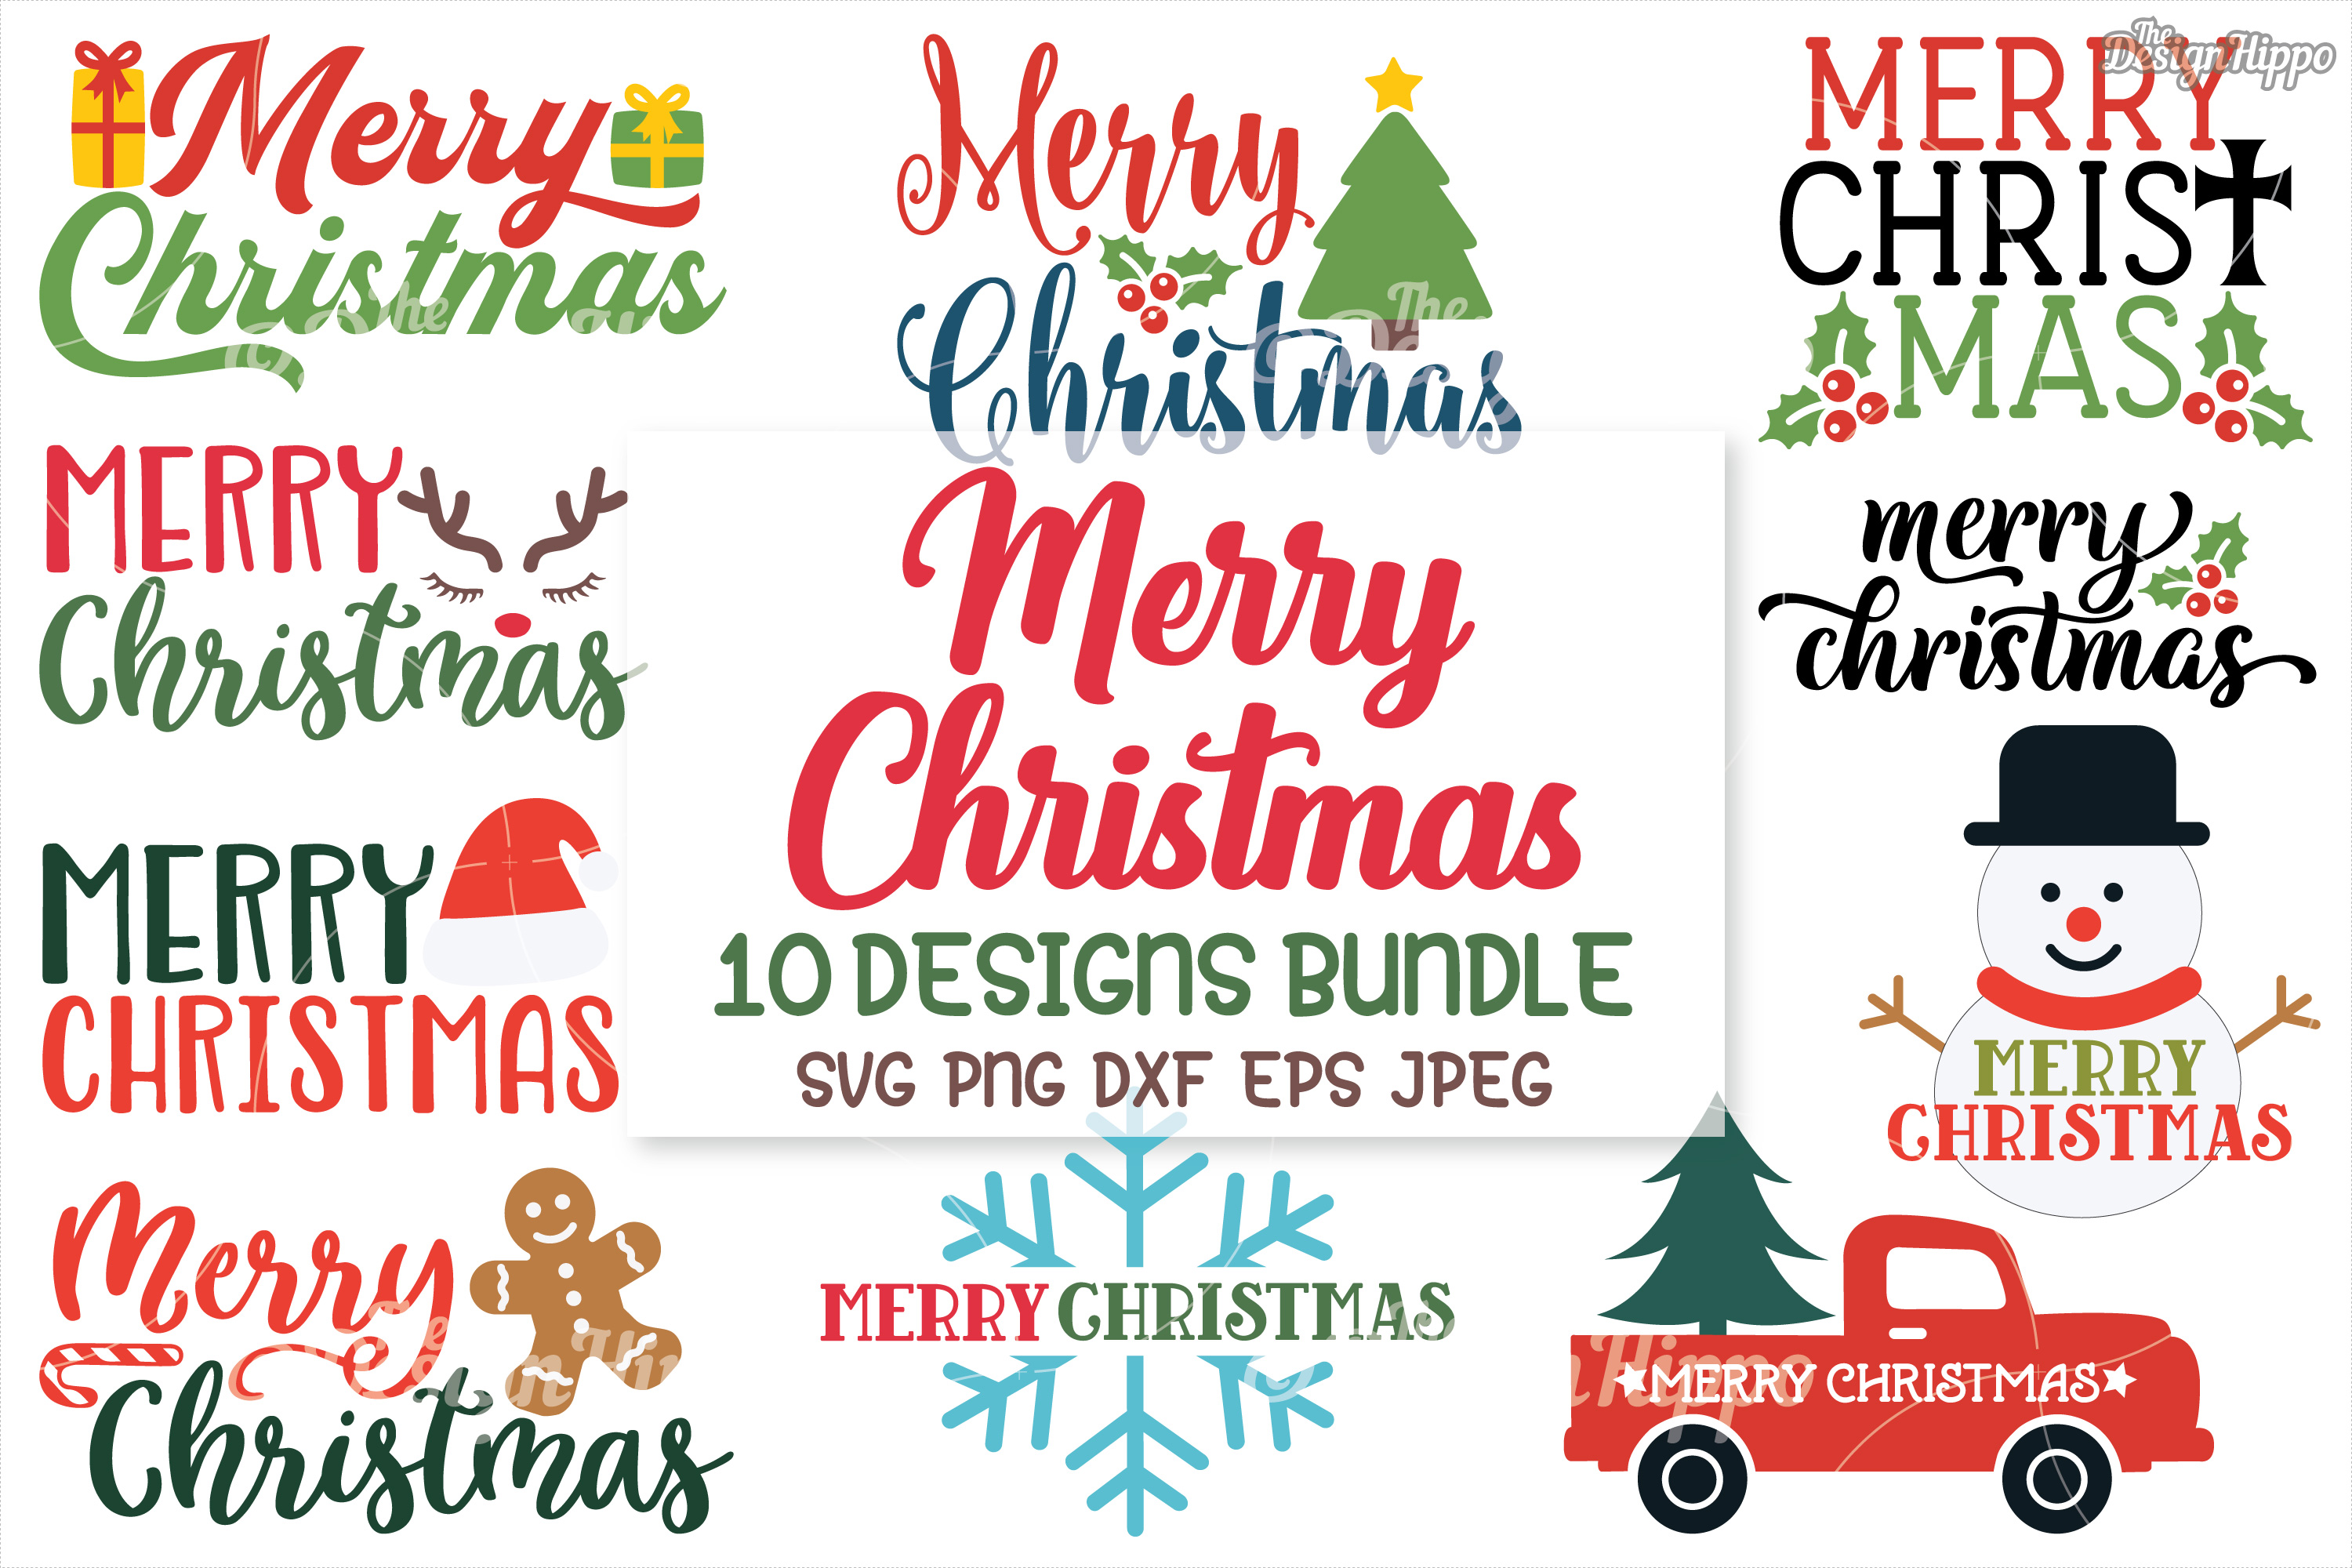 Download Free Merry Christmas Bundle Graphic By Thedesignhippo Creative Fabrica for Cricut Explore, Silhouette and other cutting machines.